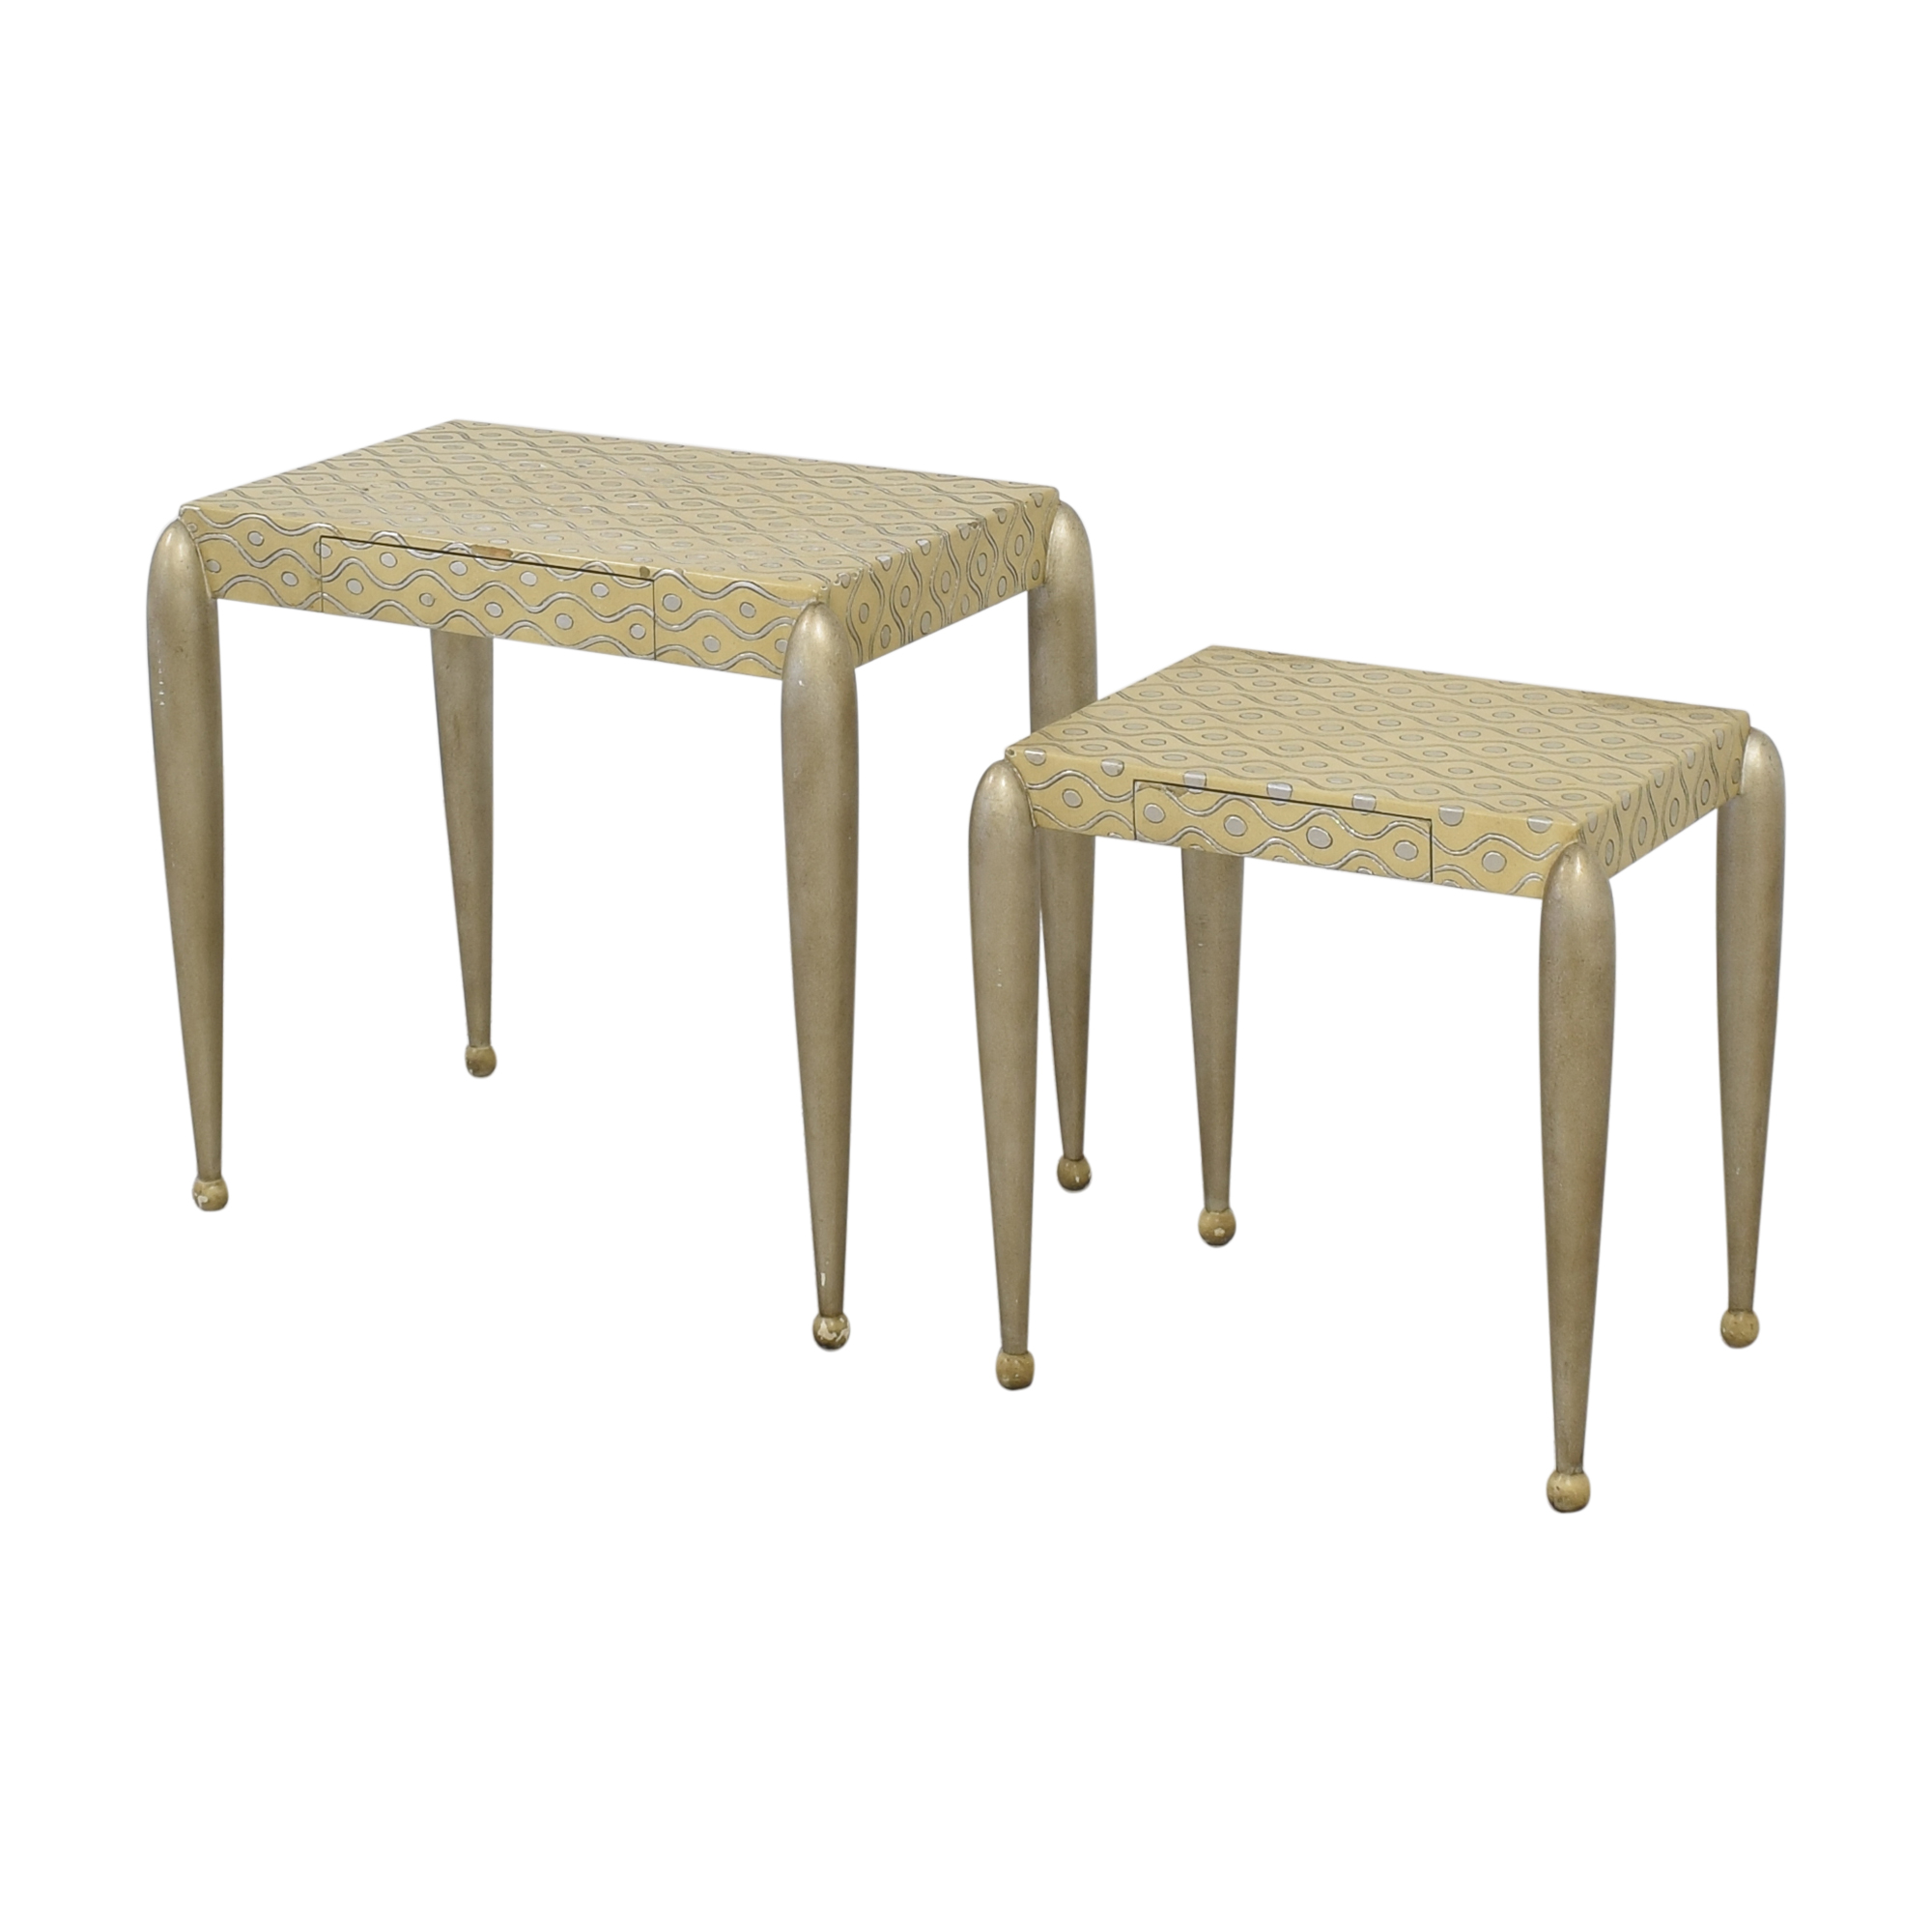 shop African Inspired Nesting Tables with Drawers ABC Carpet & Home